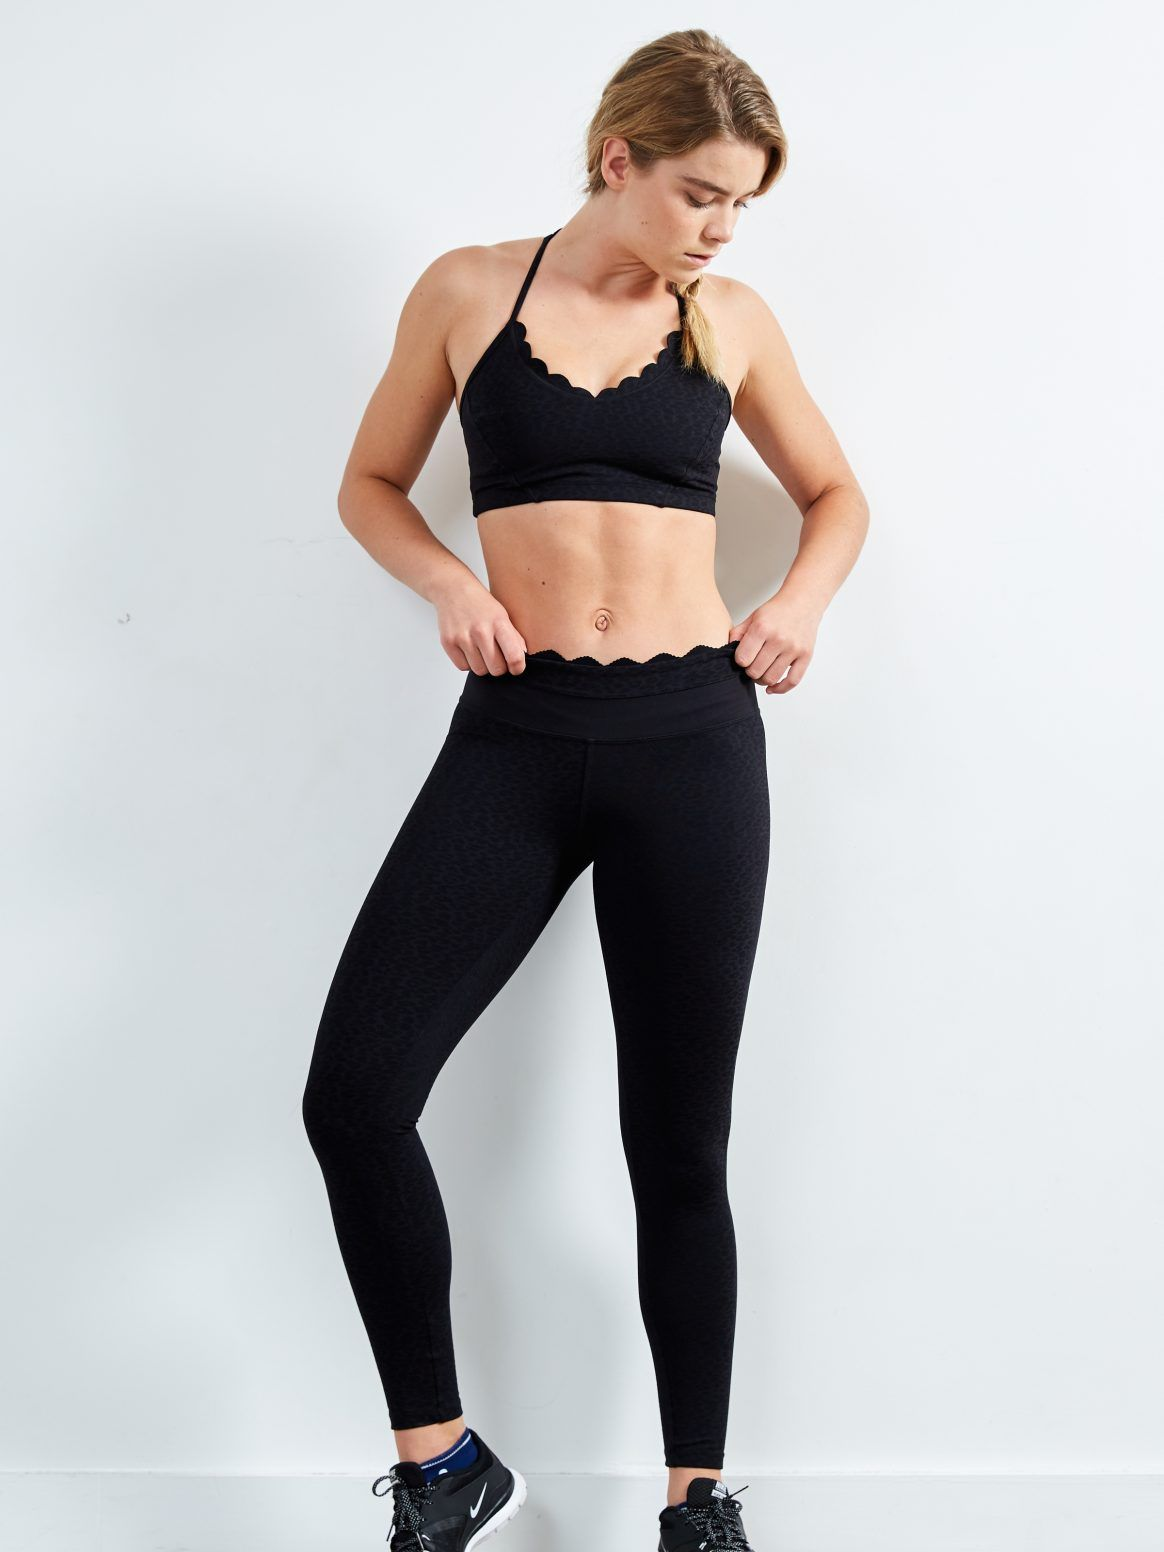 8704751976ba7 Track & Bliss Into The Moonlight Scalloped leggings with a subtle animal  print | Shop the latest activewear arrivals on Fashercise now! #Stylishlyfit